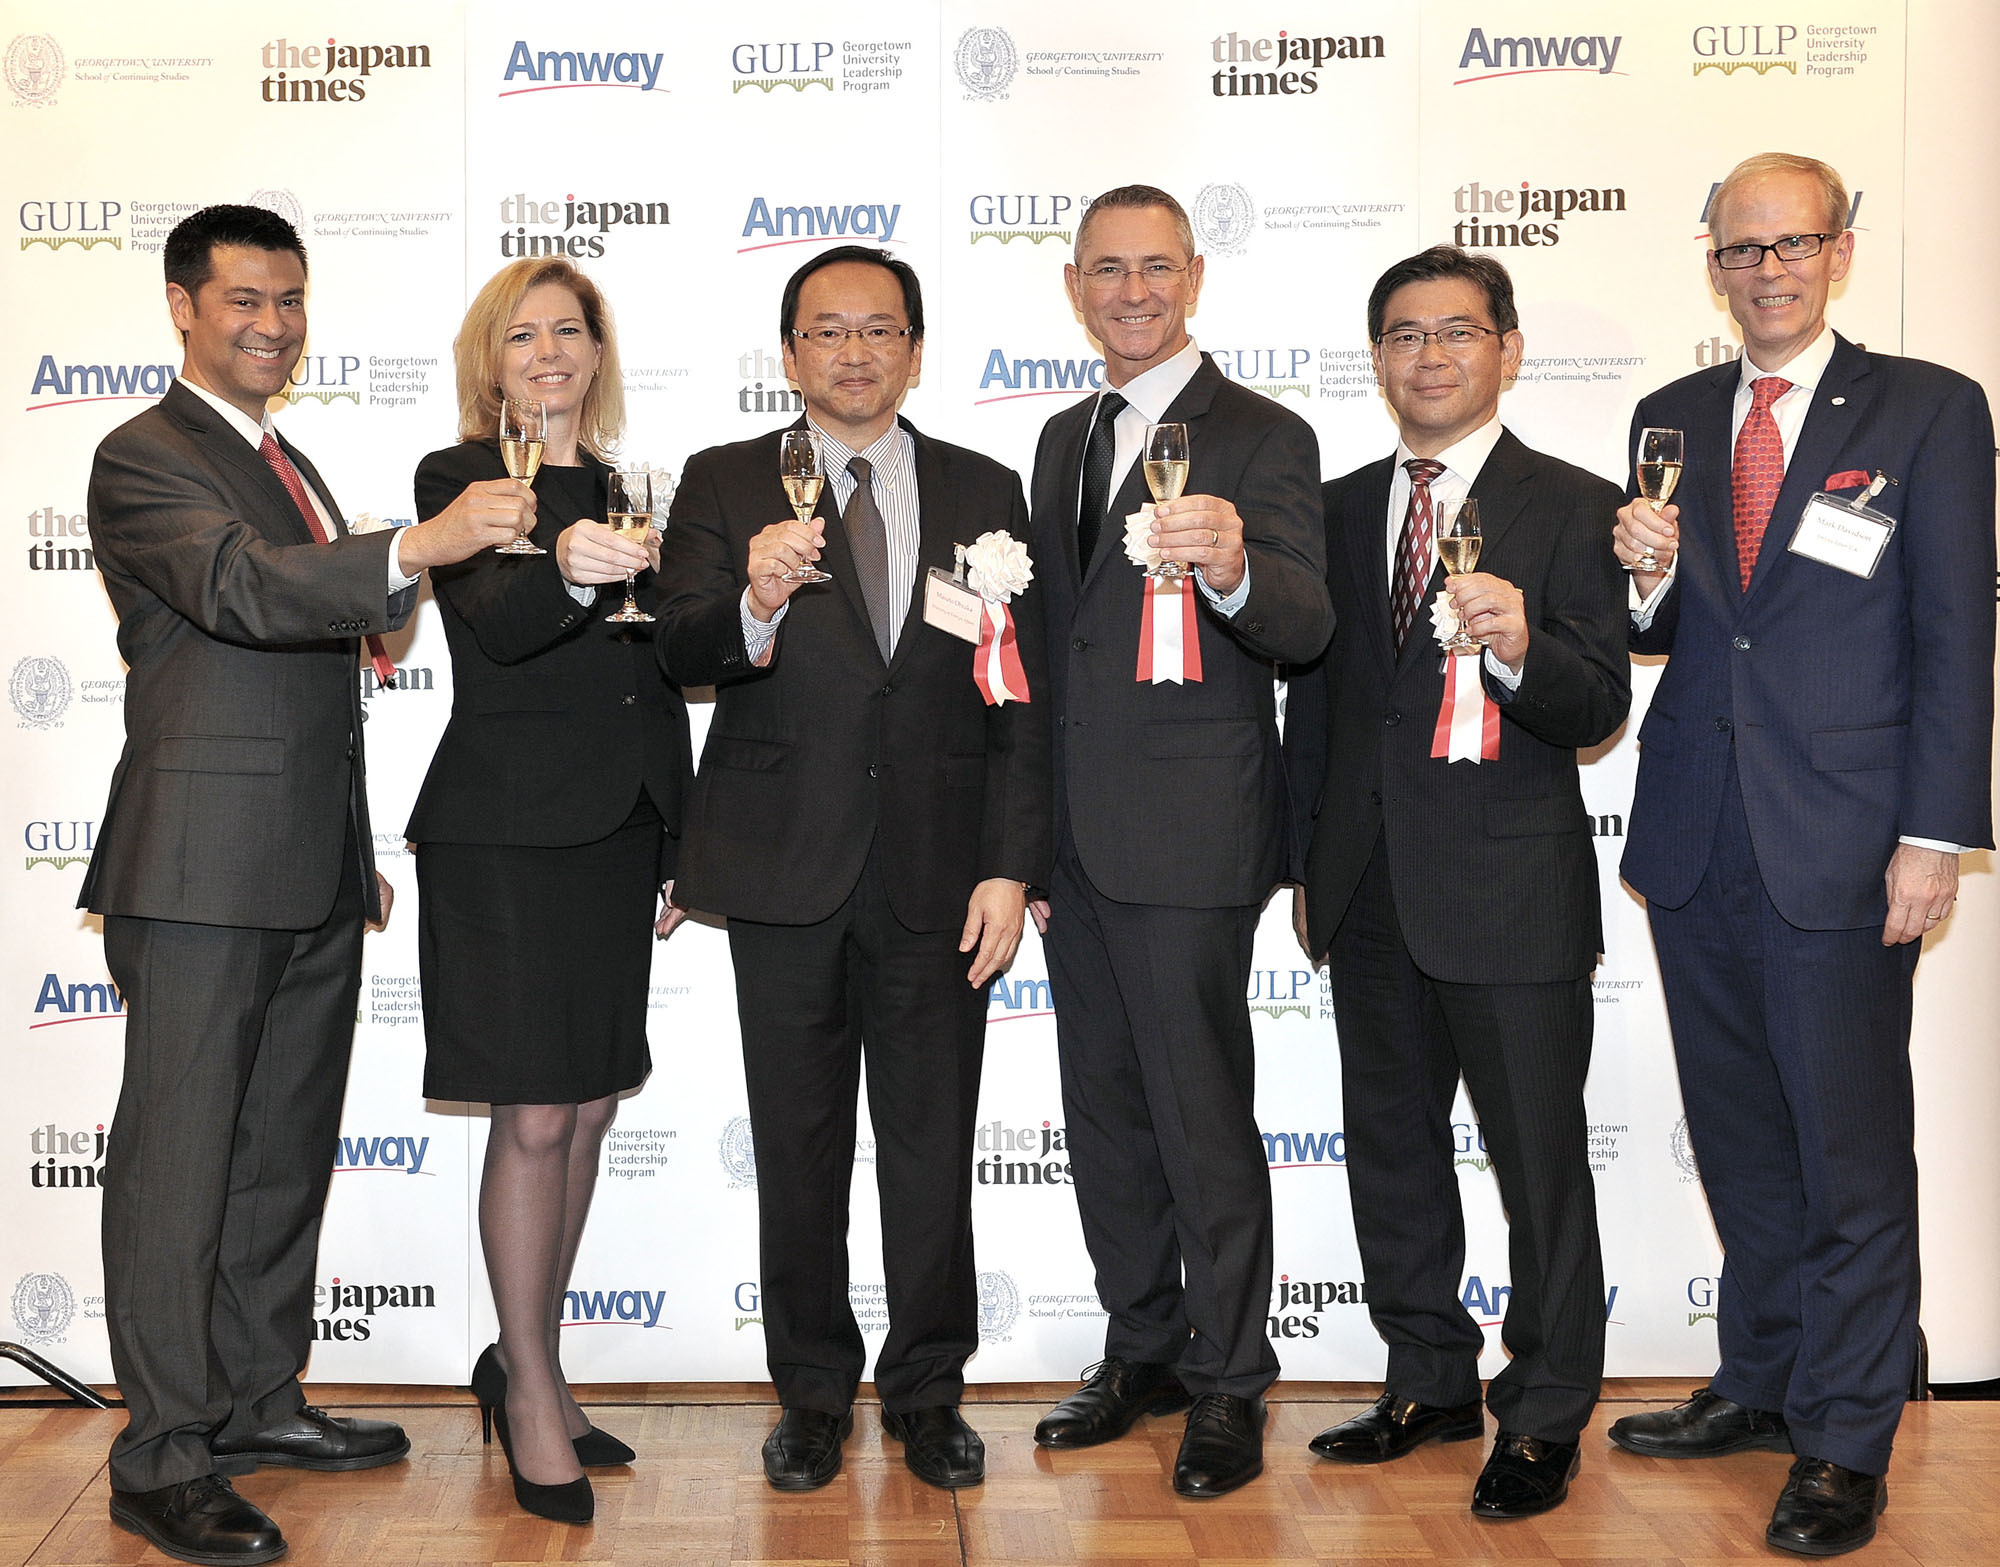 From left: Michael Turner, cultural affairs officer at the U.S. Embassy; Kelly Otter, dean of Georgetown University's School of Continuing Studies; Masato Ohtaka, deputy assistant minister at the Foreign Ministry's Foreign Policy Bureau; Peter Strydom, president of Amway Japan; Takeharu Tsutsumi, president of The Japan Times; and Mark Davidson, director of government and external affairs at Amway Japan, attend a reception in Tokyo on Sept. 4 to launch the 2017 Georgetown University Leadership Program (GULP). |  YOSHIAKI MIURA